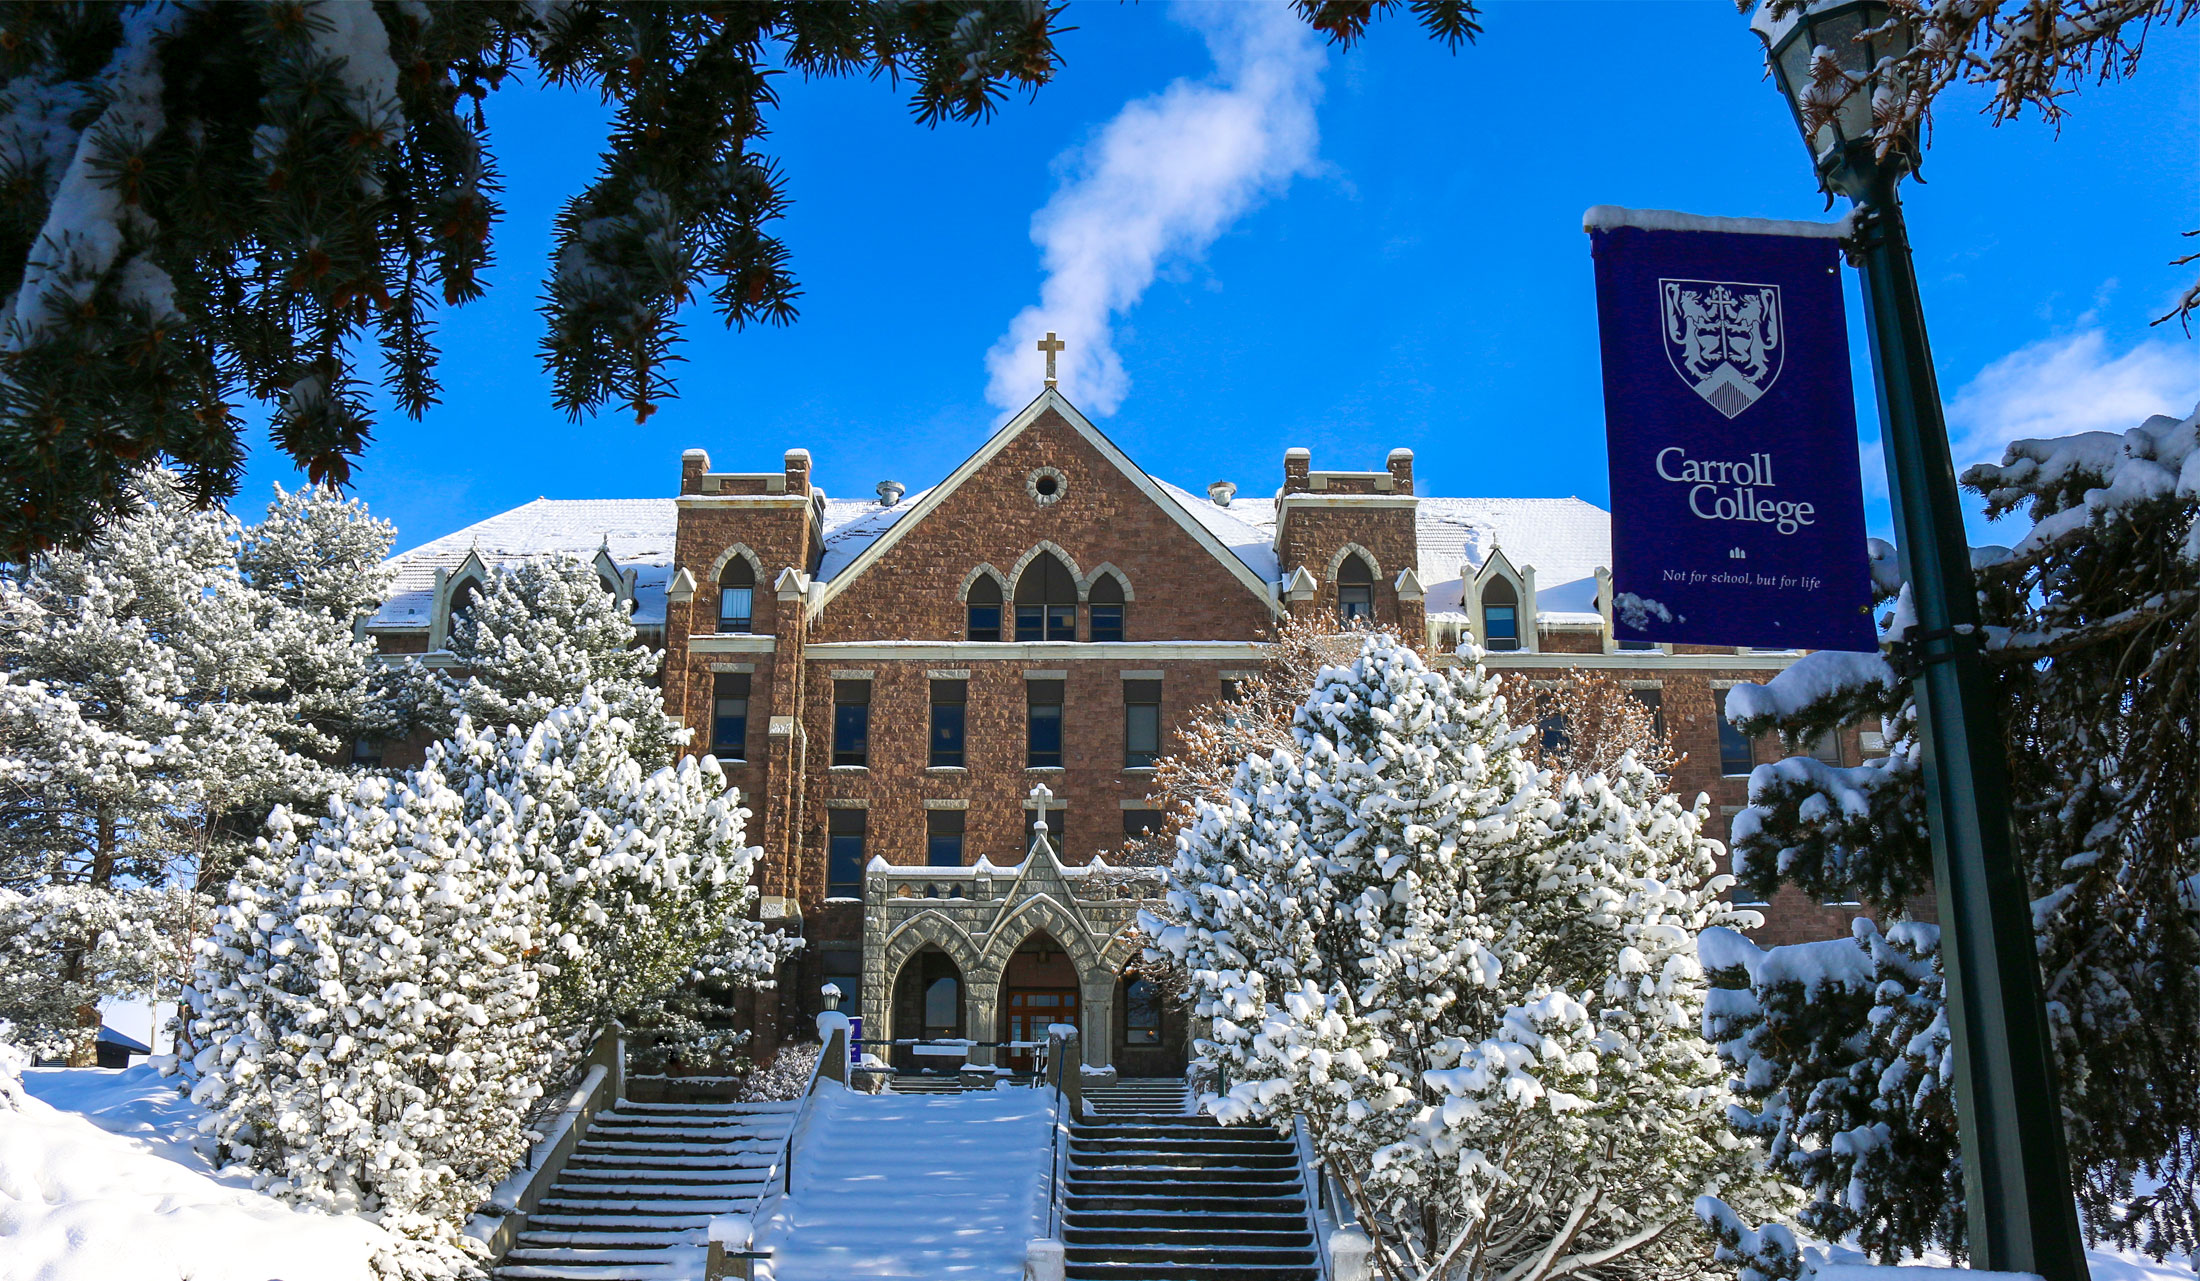 Winter photo of St. Charles on campus